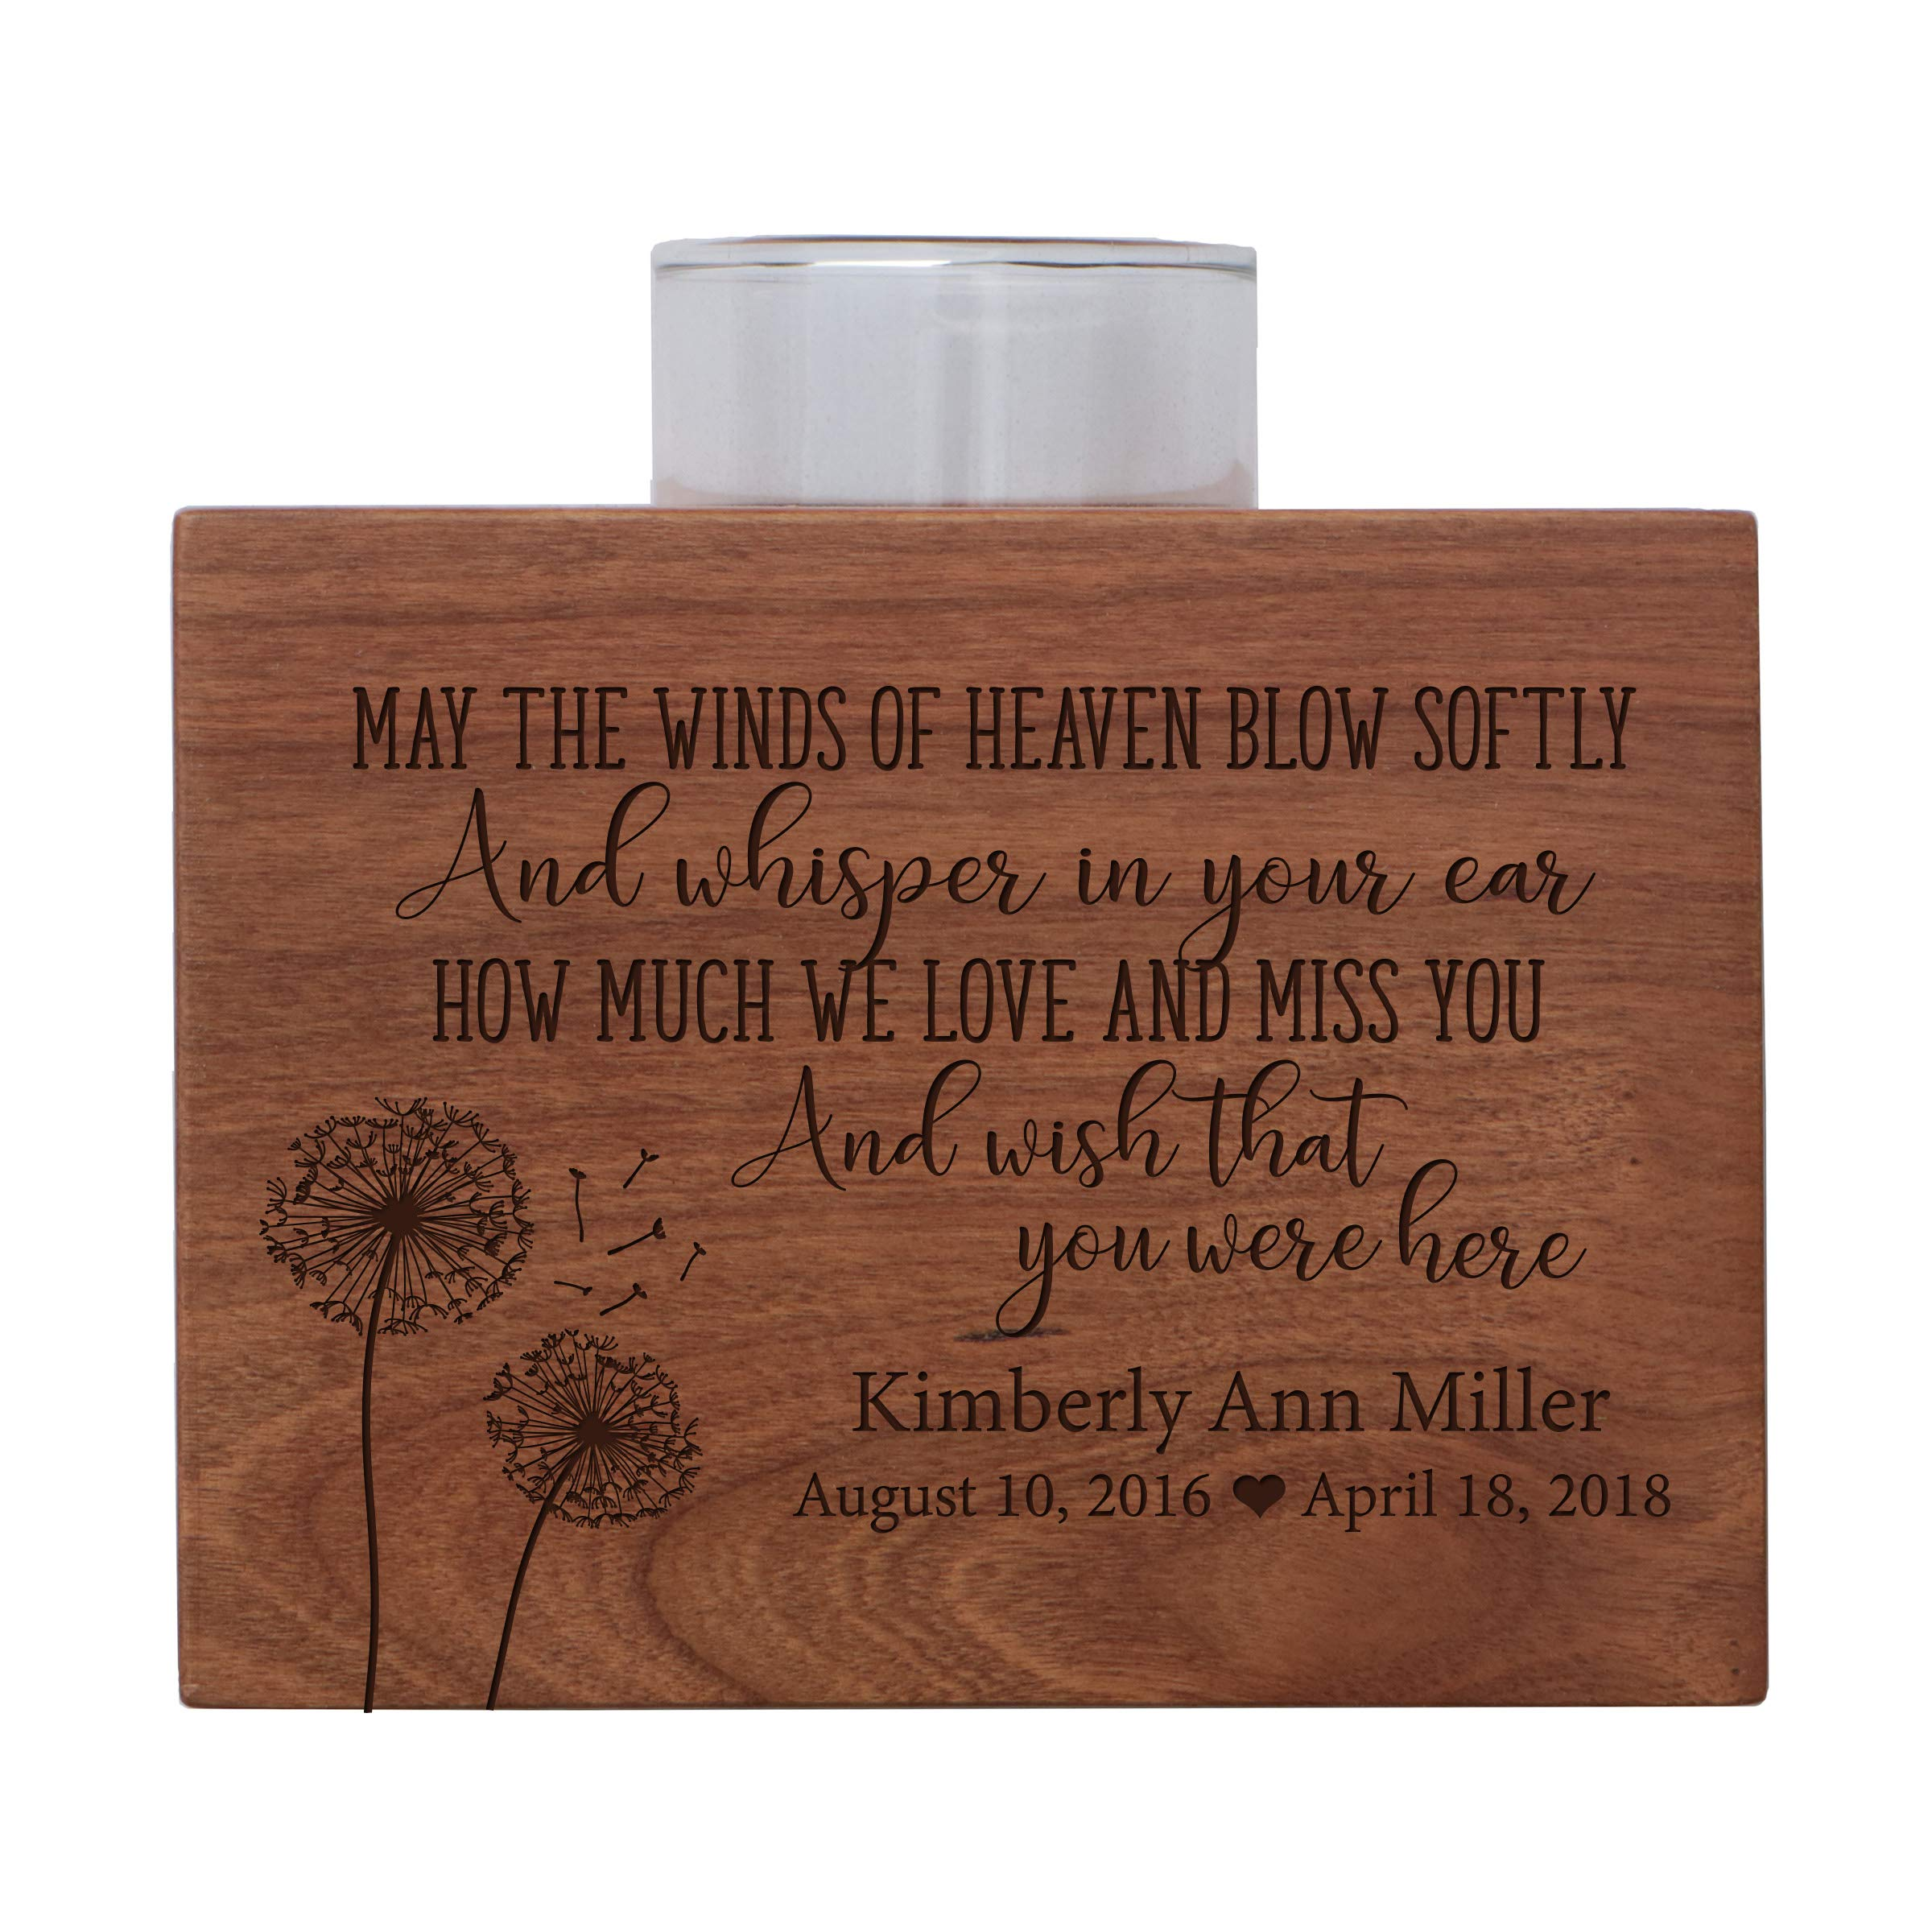 LifeSong Milestones Personalized Memorial Sympathy Votive Candle Holder Cherry Wood Keepsake Gift Ideas for Loved One 5'' x 3.75'' x 2.75 (May The Winds of Heaven Blow)